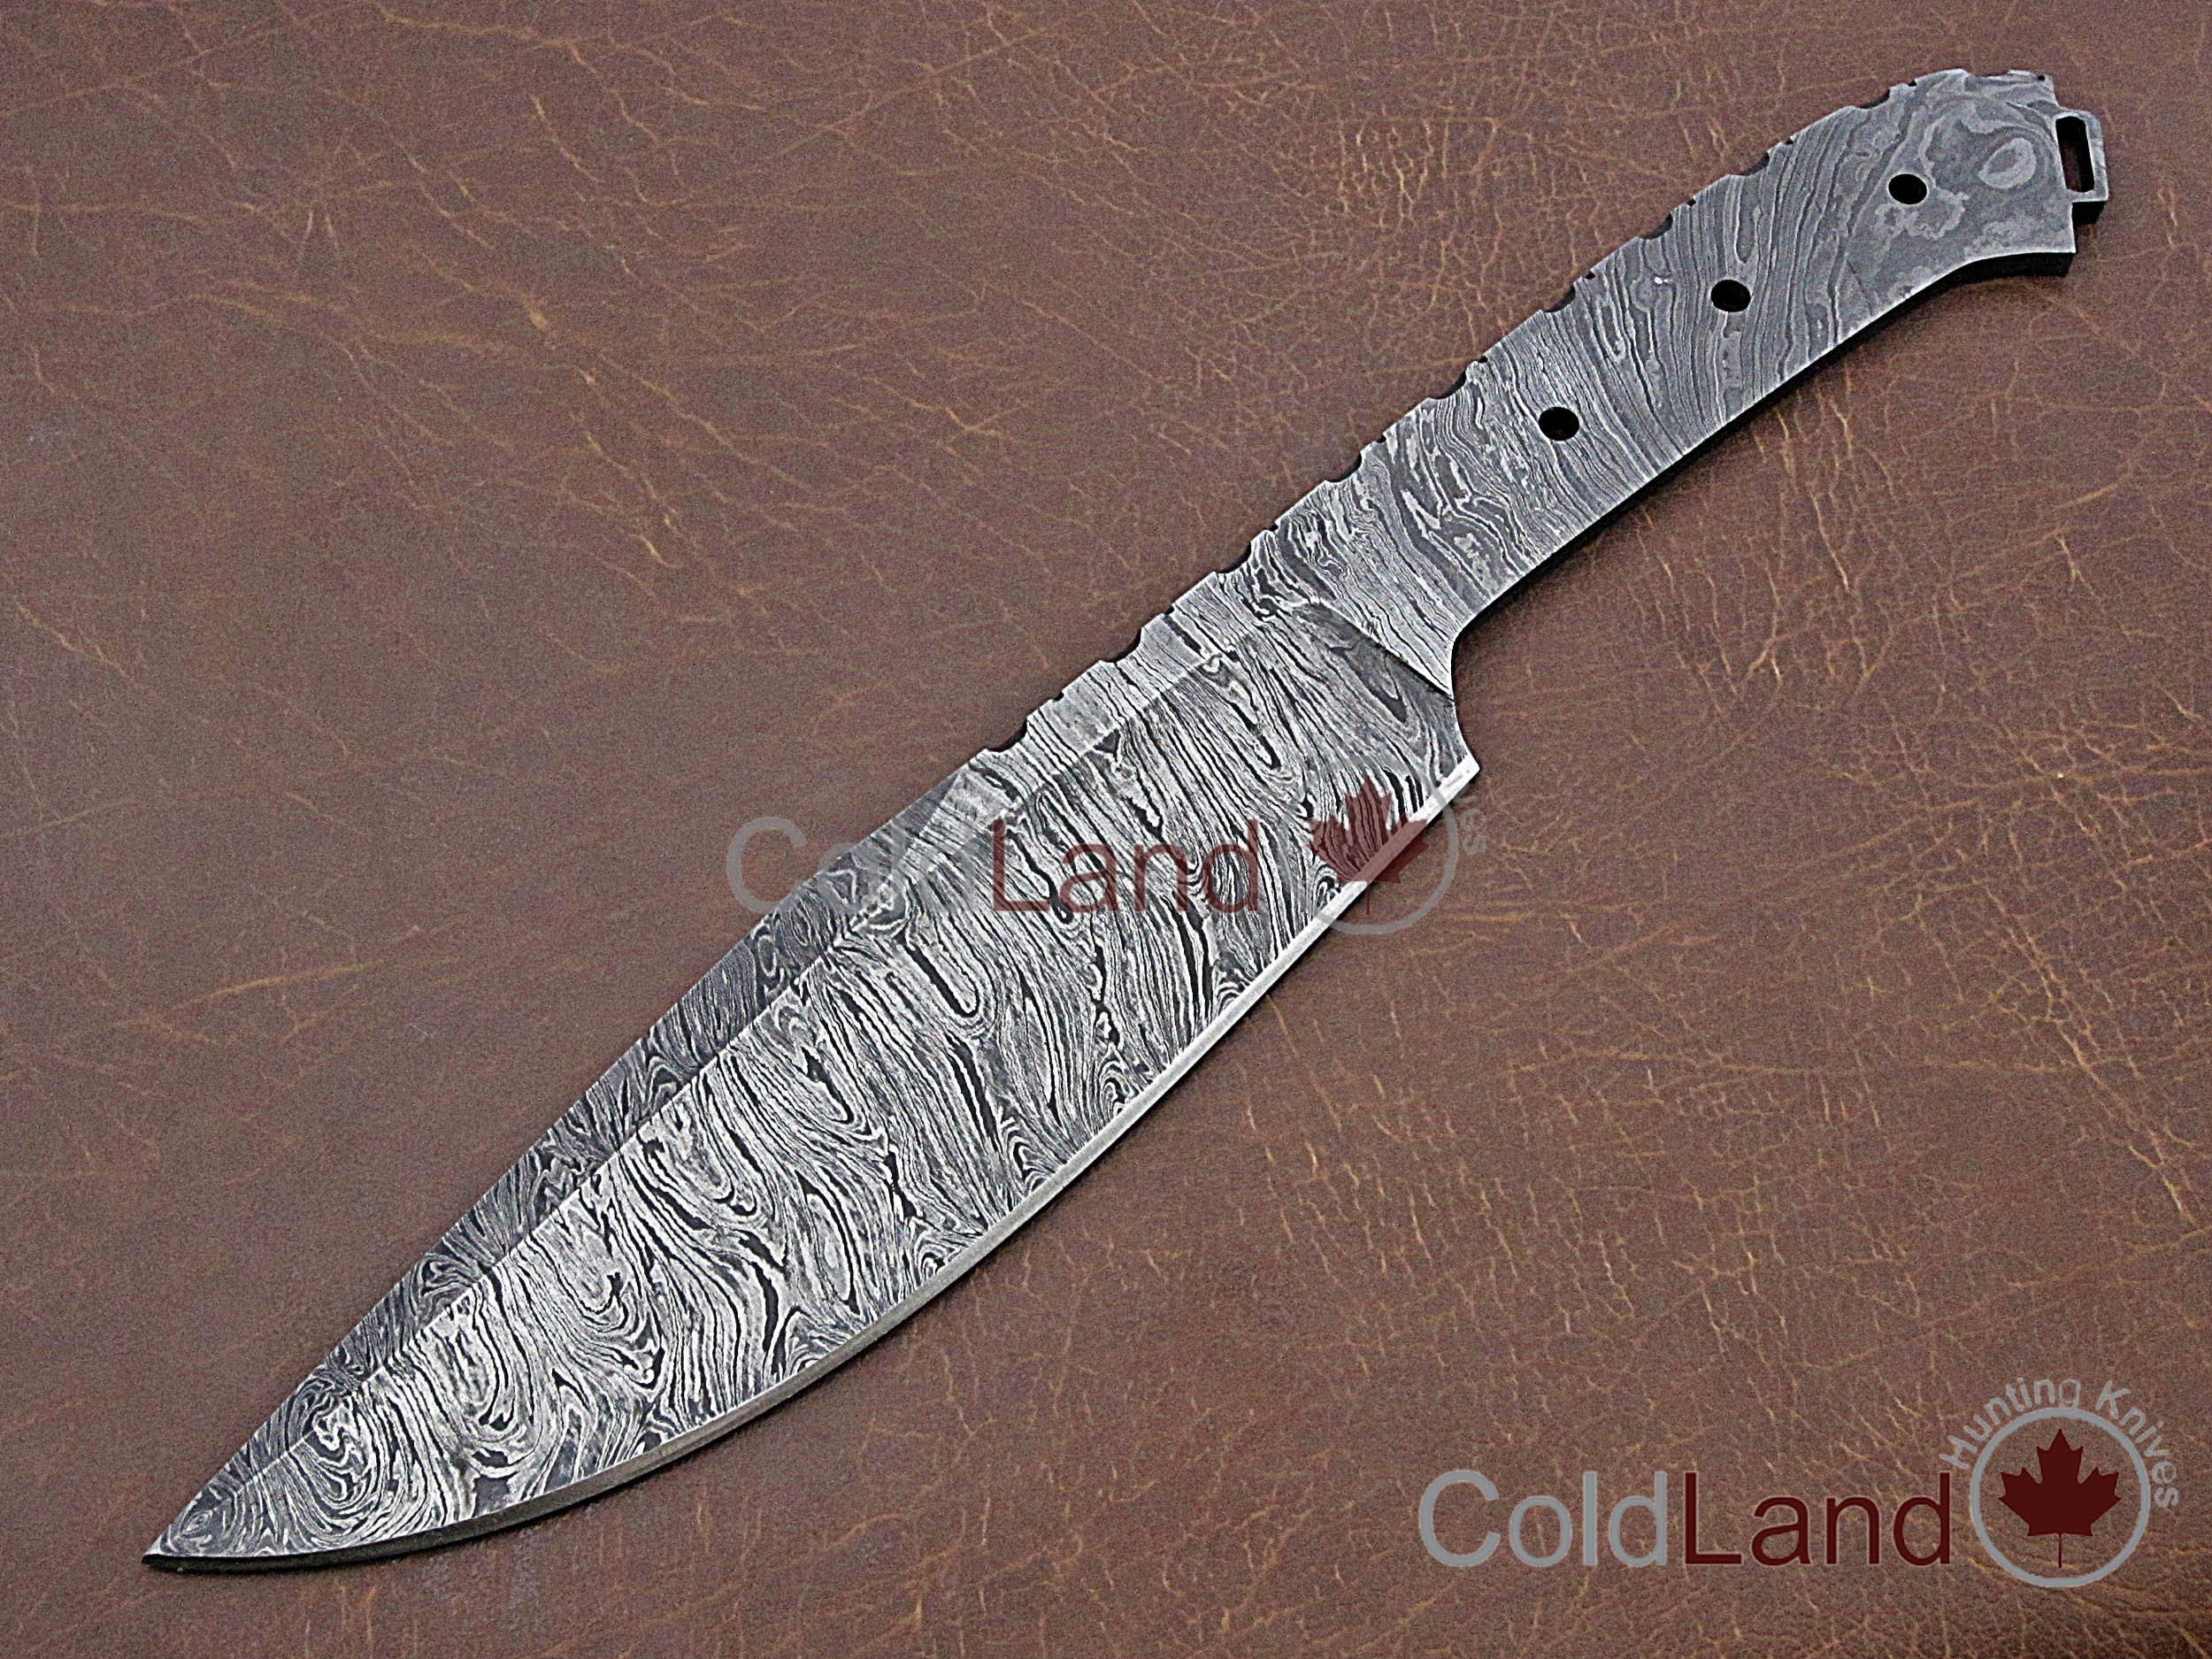 ColdLand |13'' Hand Forged Damascus Steel Blank Blade for Tactical Combat Survival Camping Outdoor Bushcraft Knife Making Supplies NB06